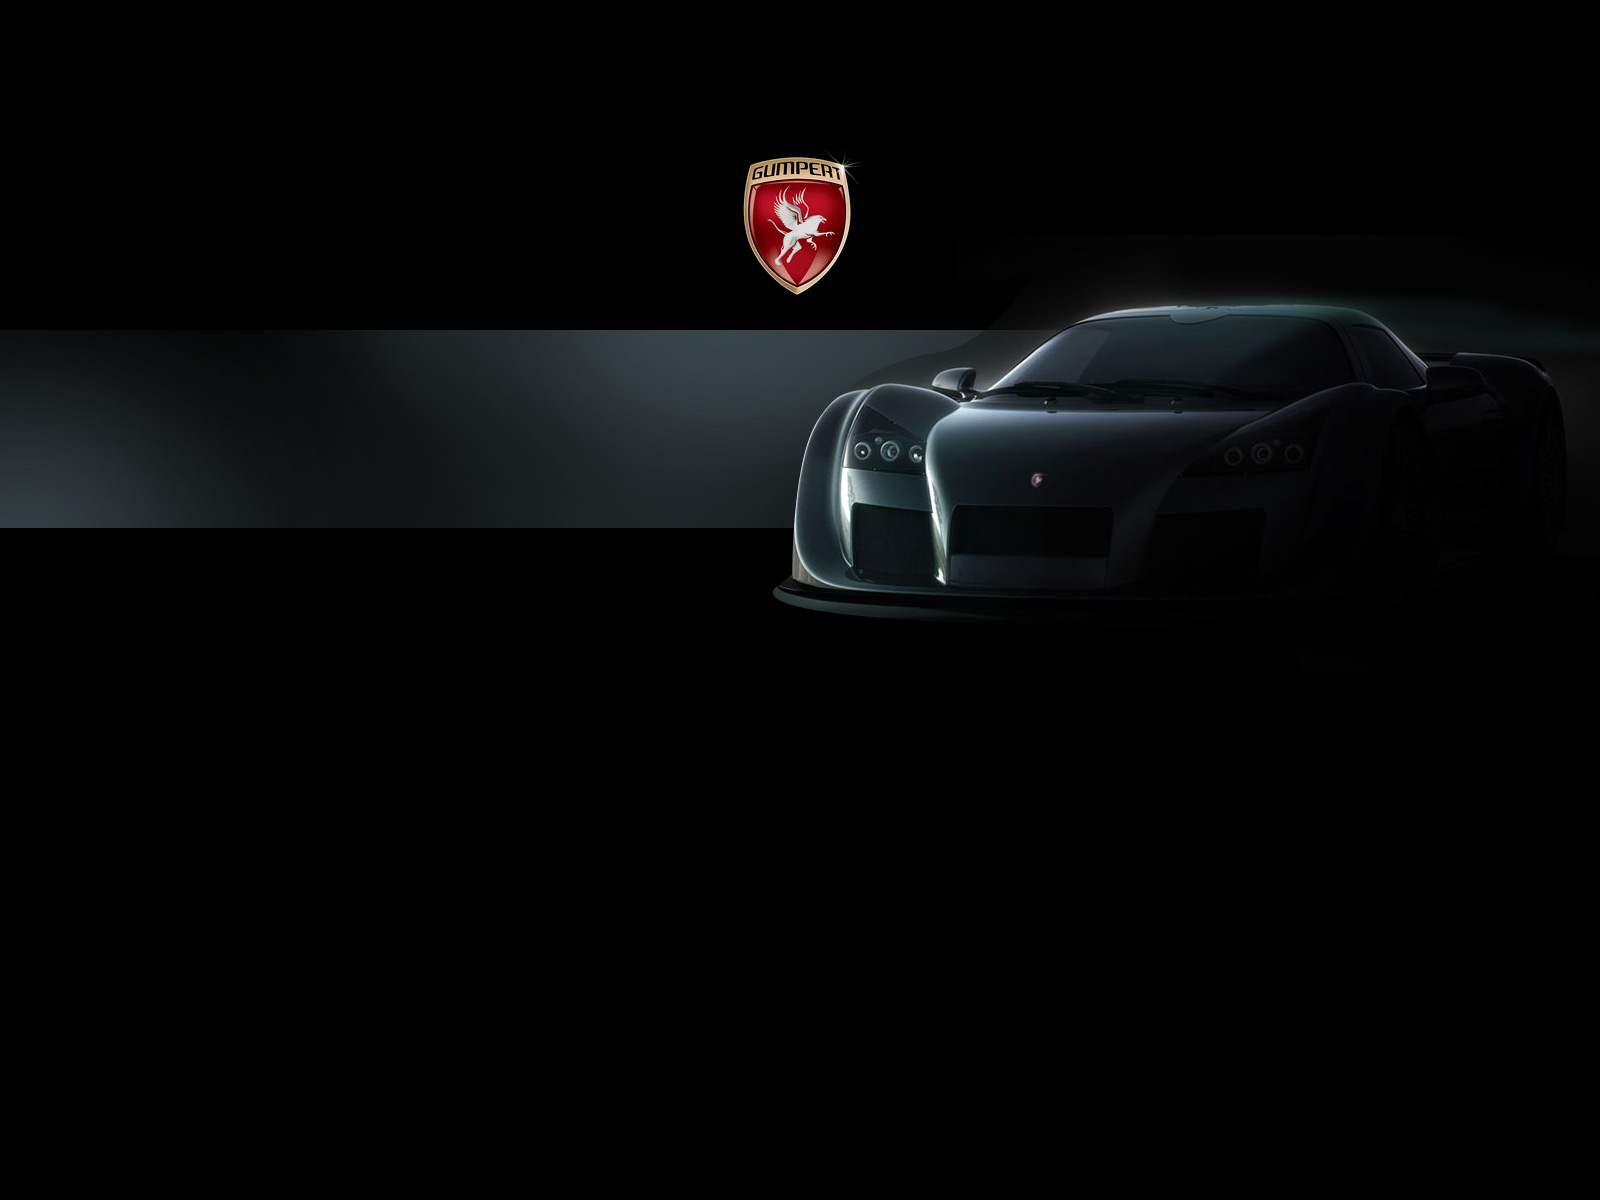 "supercar-wallpapers-gumpert-apollo-4"" width="